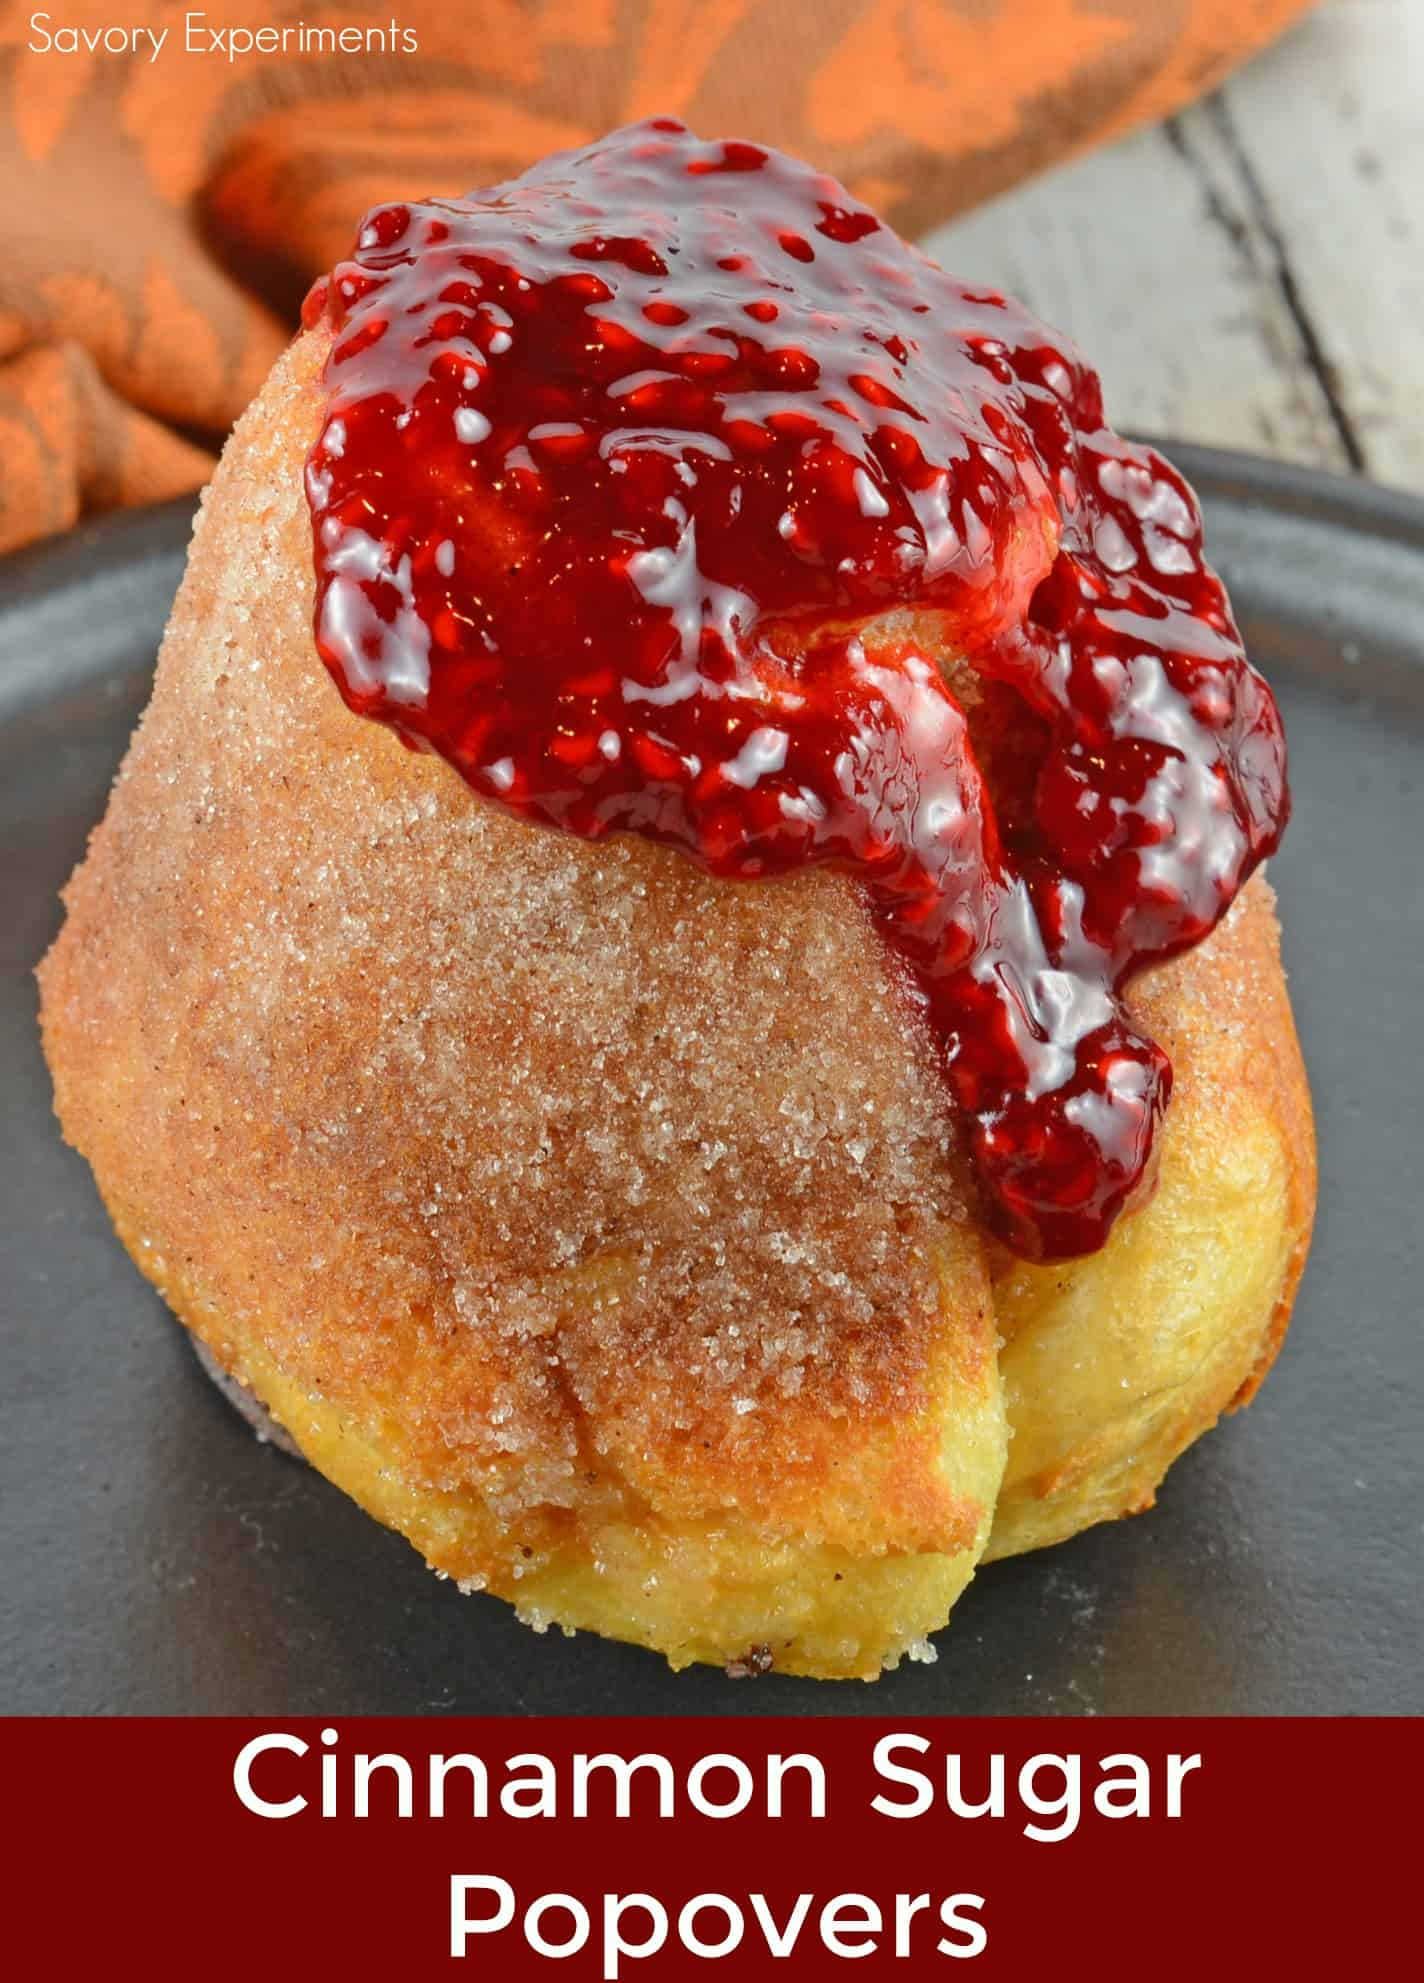 Cinnamon Sugar Popovers are easier to make then you think! A crispy outside and chewy inside coated with cinnamon and sugar, then drizzled in a fresh raspberry sauce.